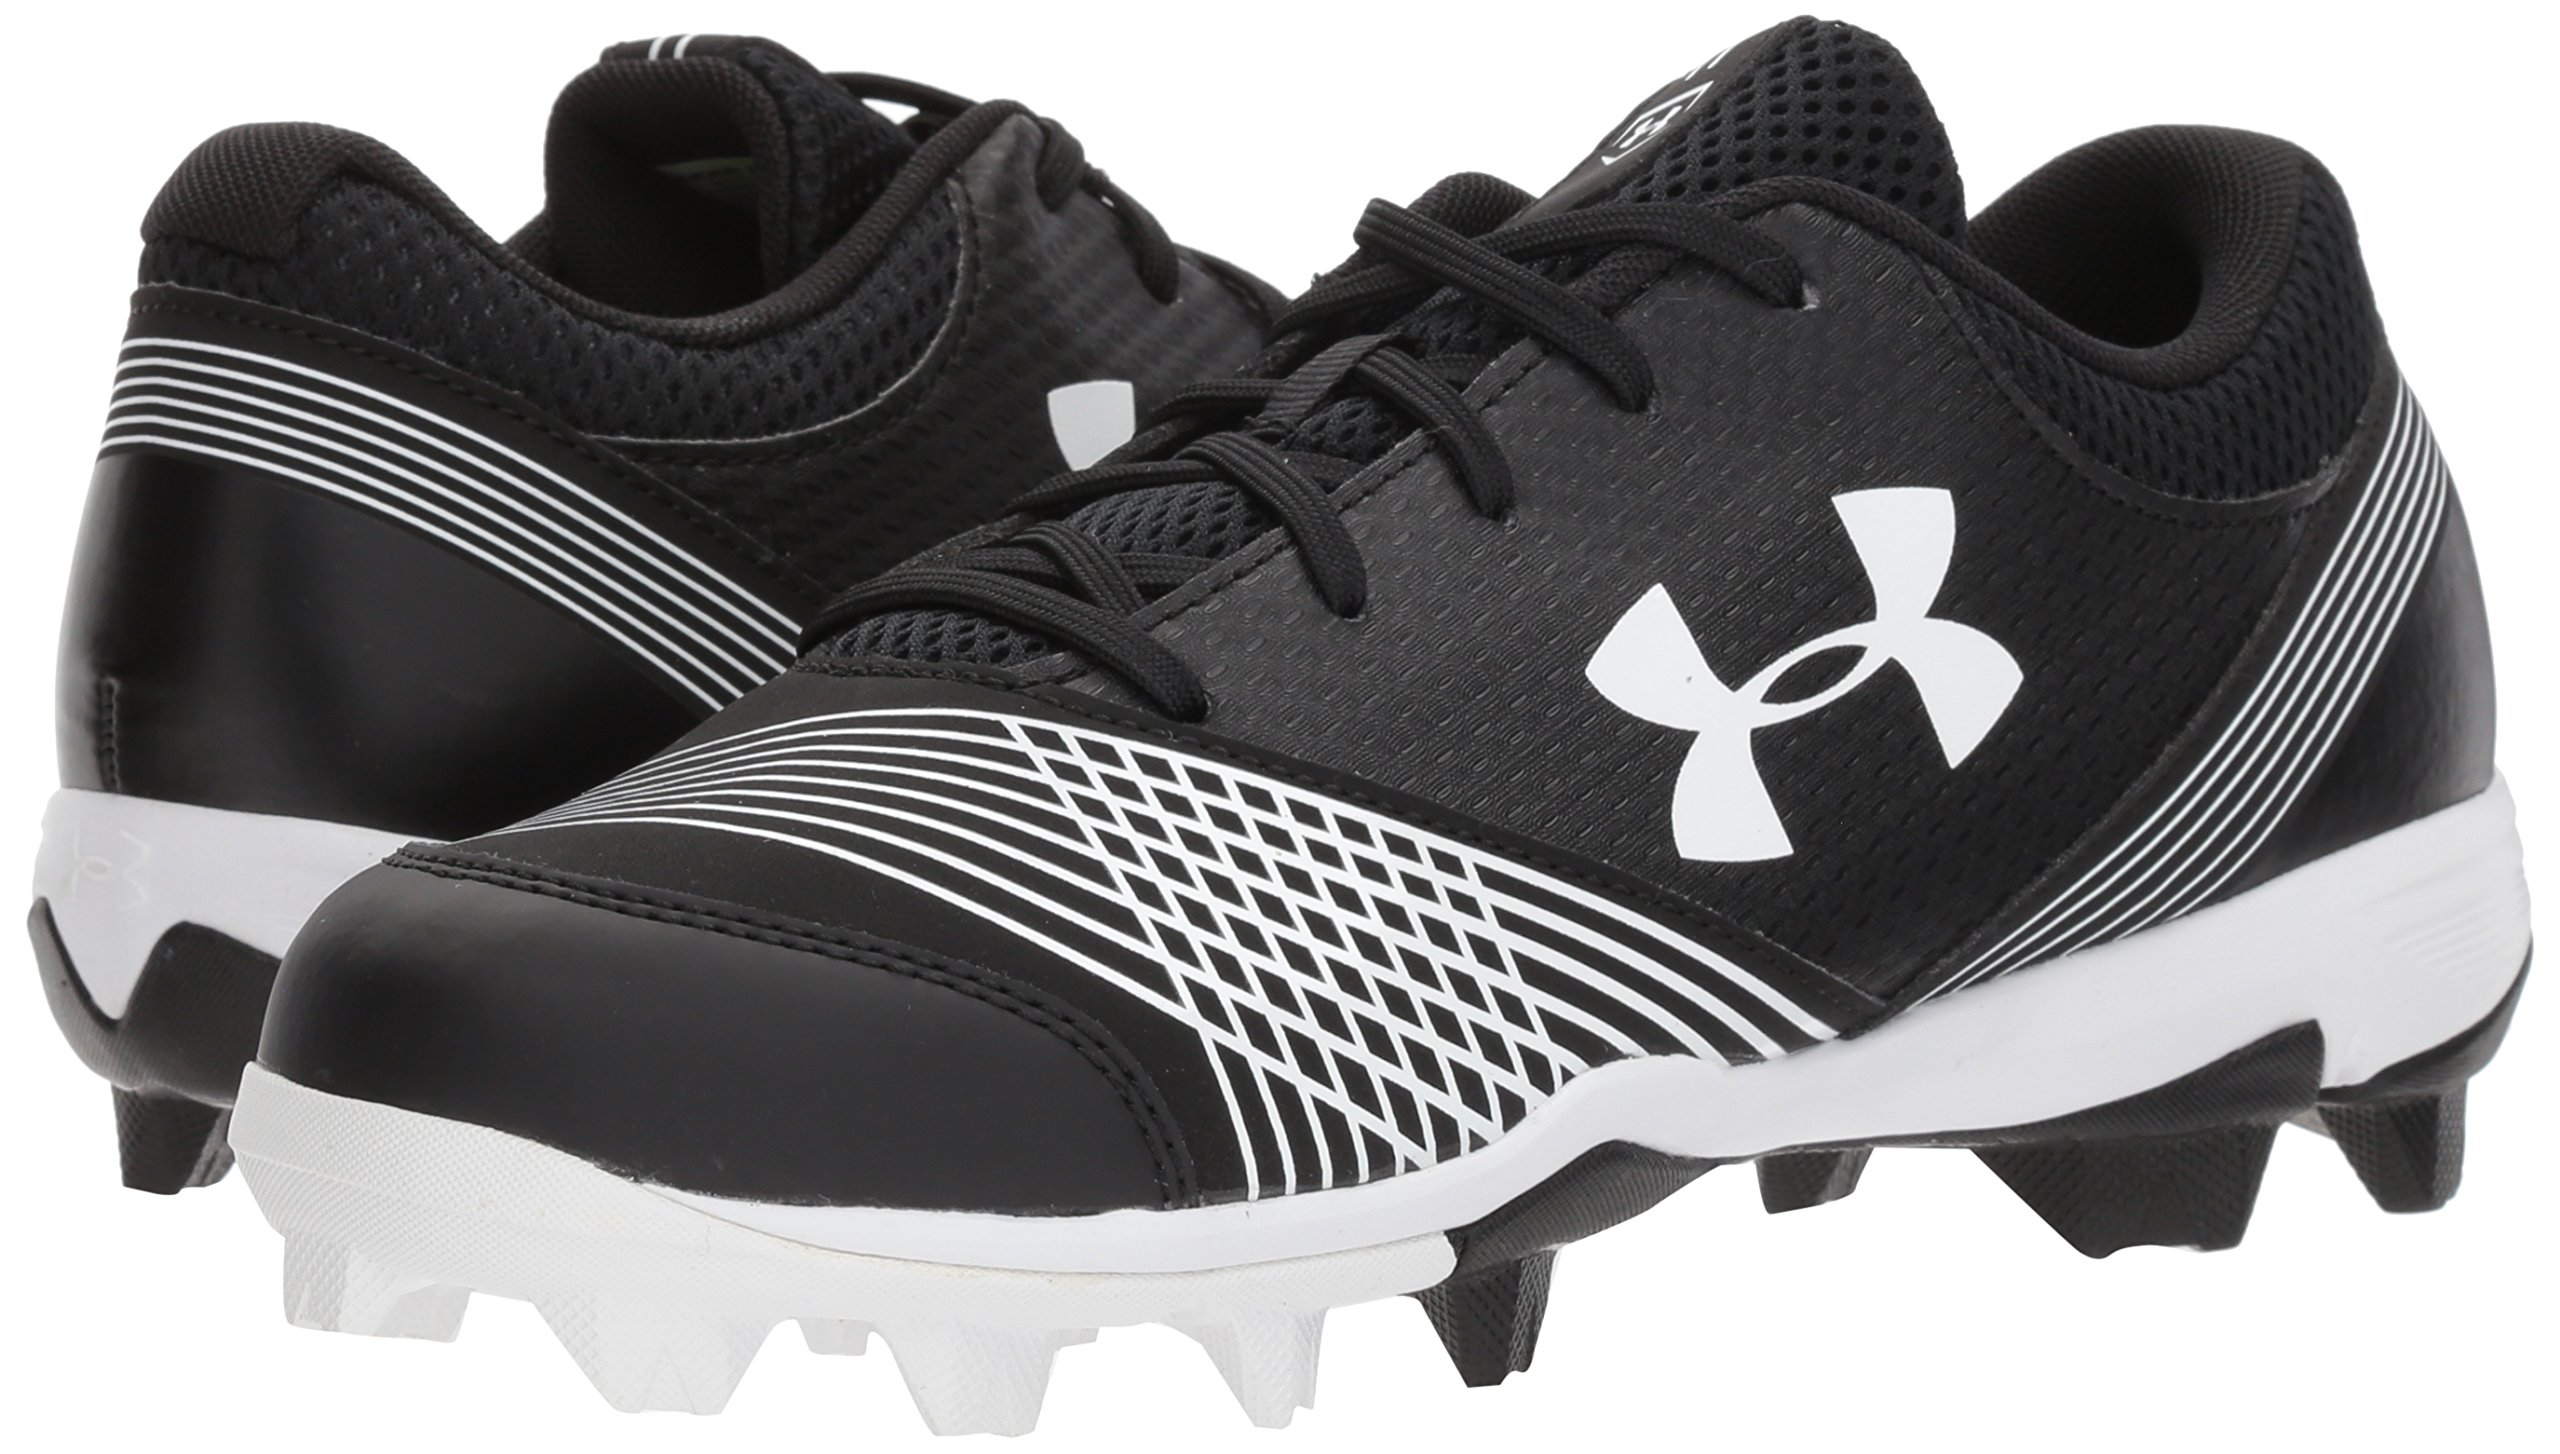 Under Armour Women's Glyde RM Softball Shoe 011/Black, 7 by Under Armour (Image #6)